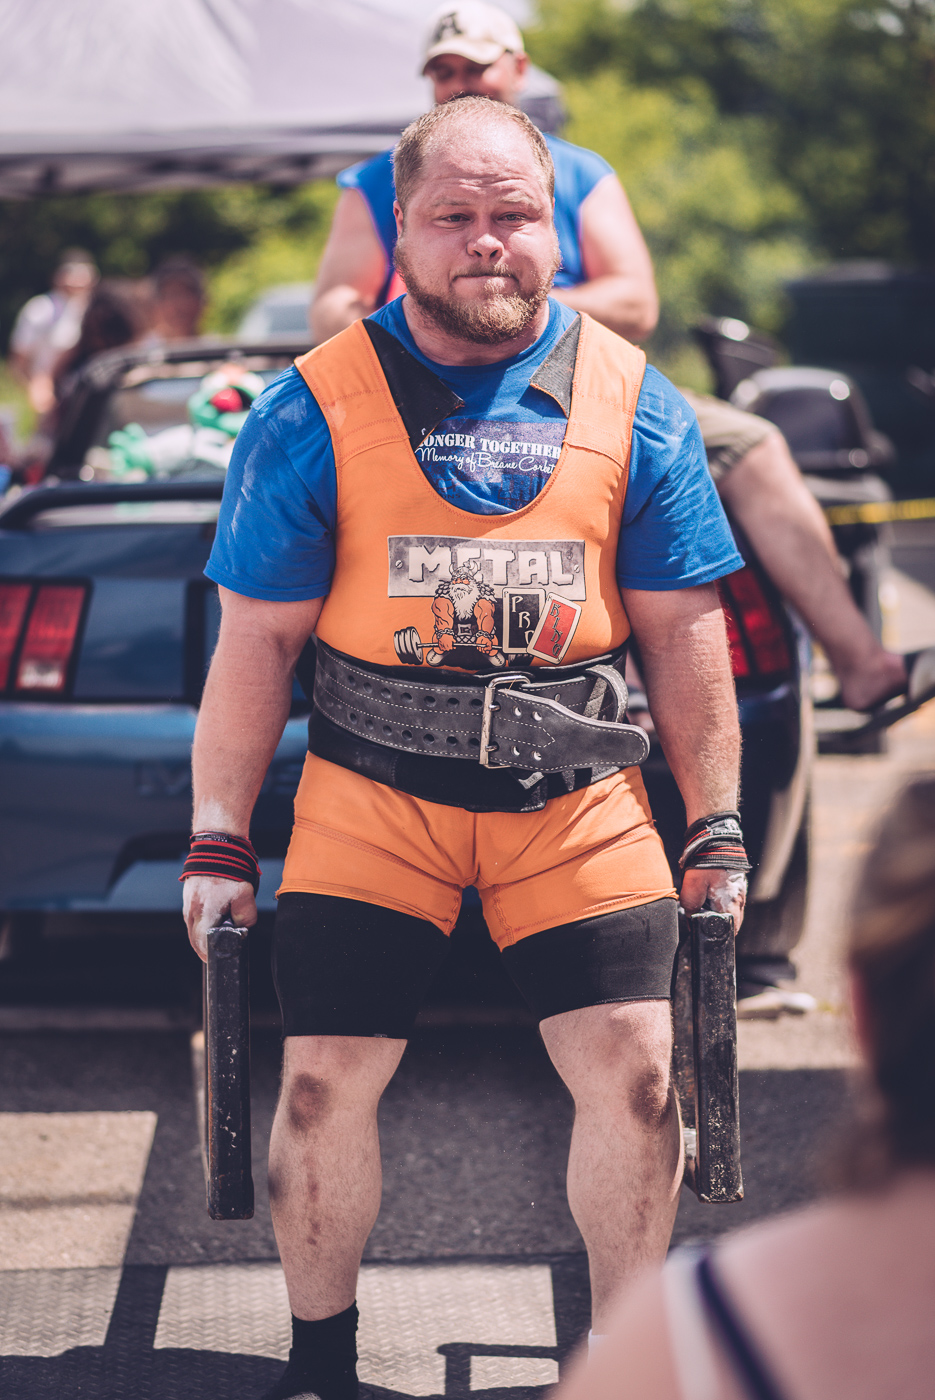 strongman_2016_blog6.jpg